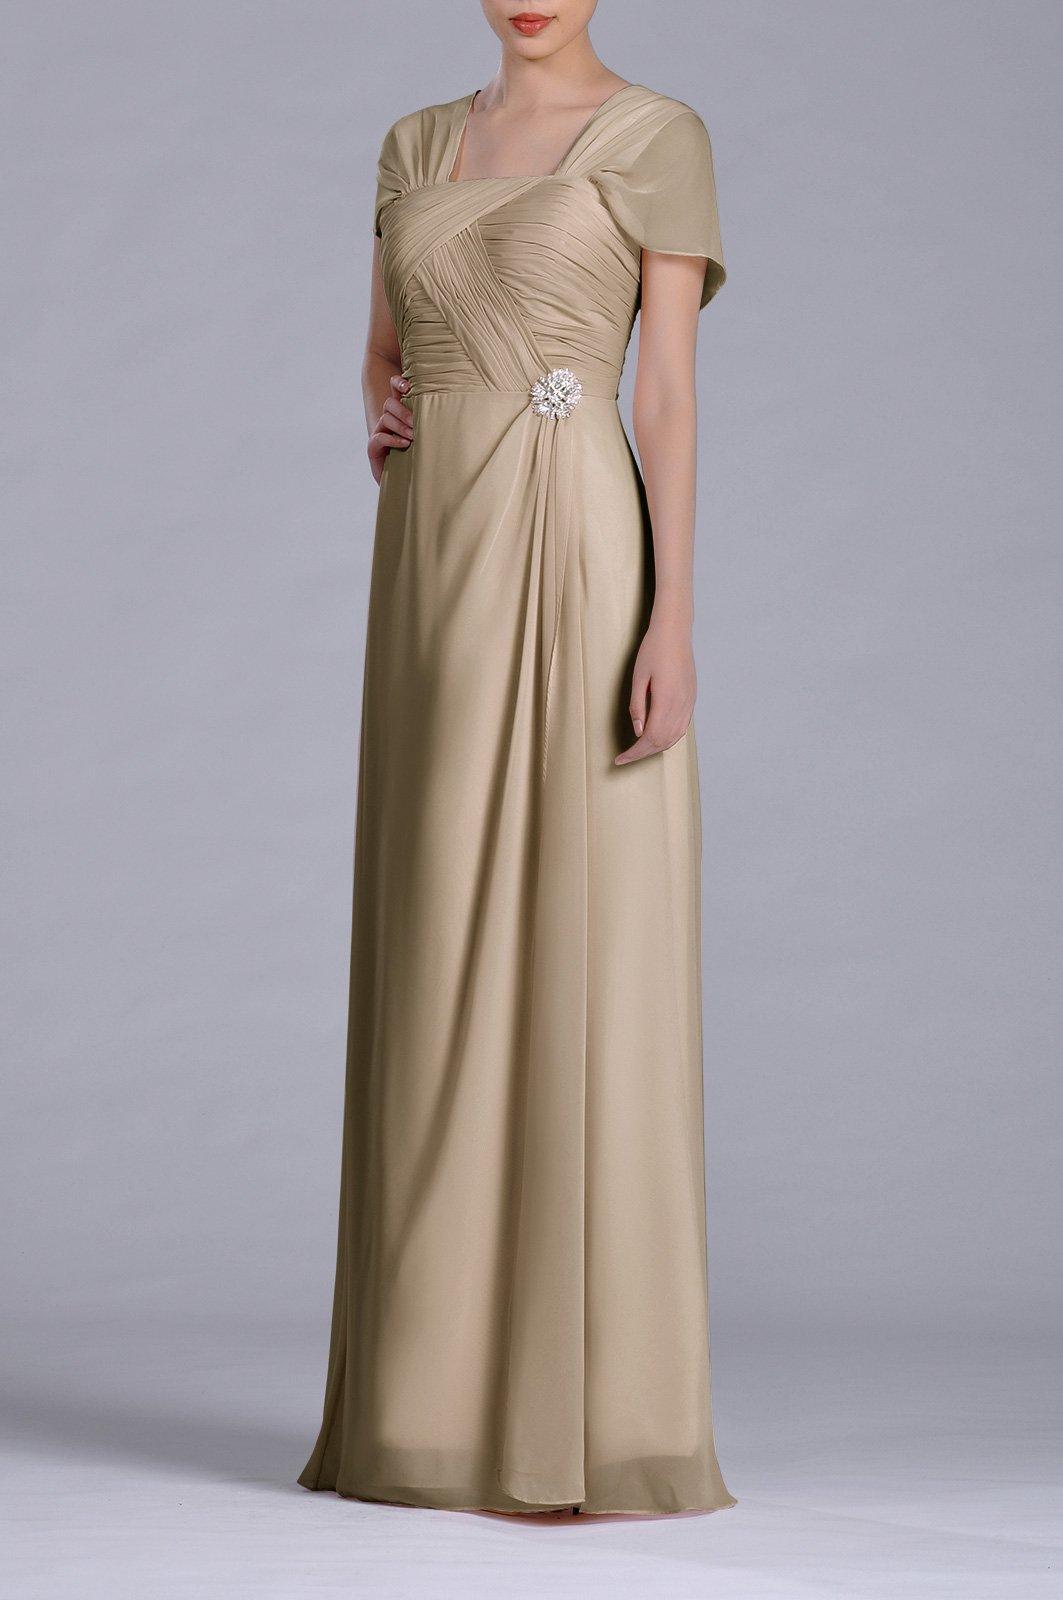 champagne color mother of the bride, OFF 7%,Buy!